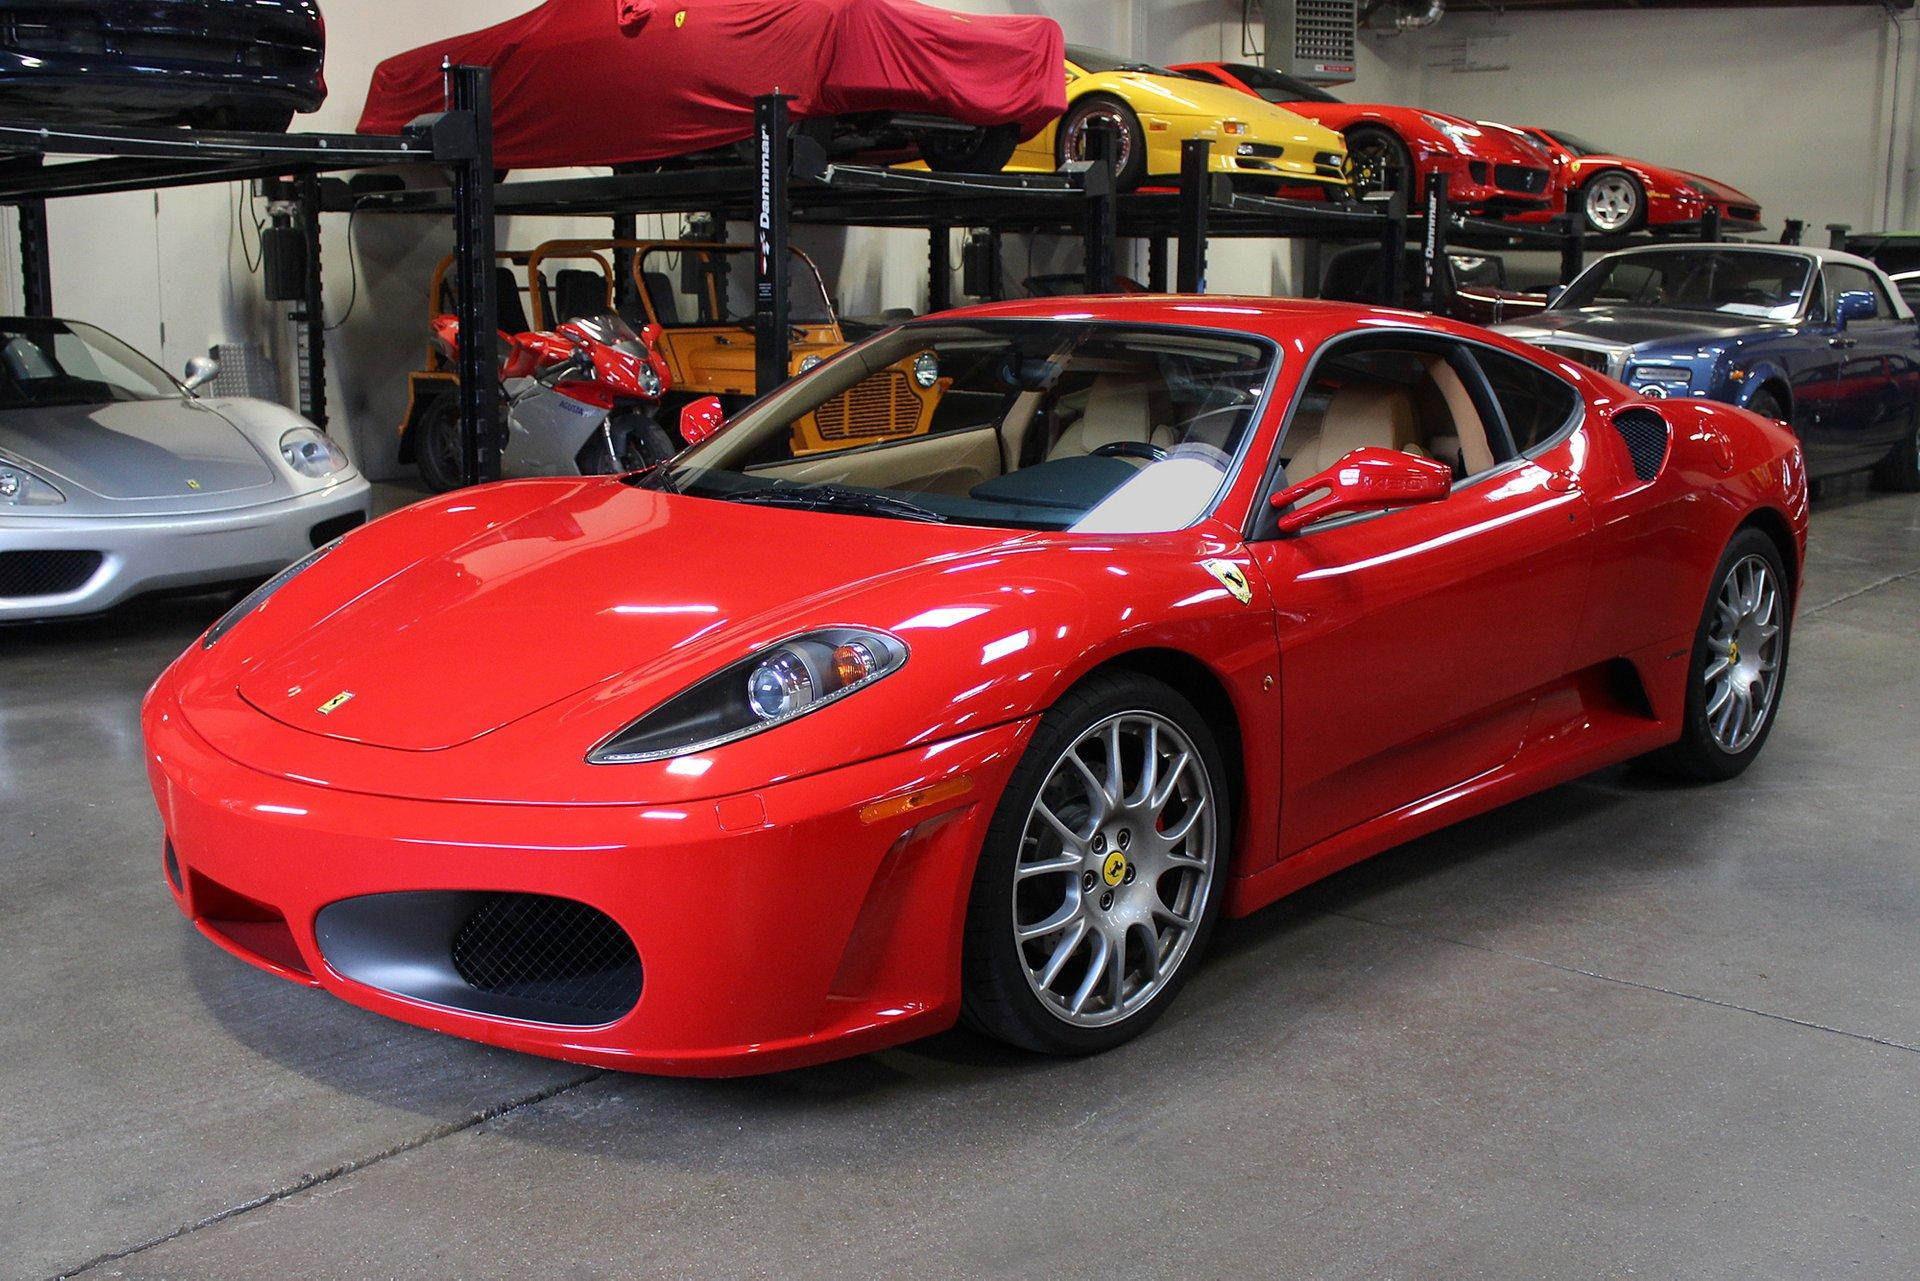 Used 2007 Ferrari F430 For Sale Special Pricing San Francisco Sports Cars Stock C19002